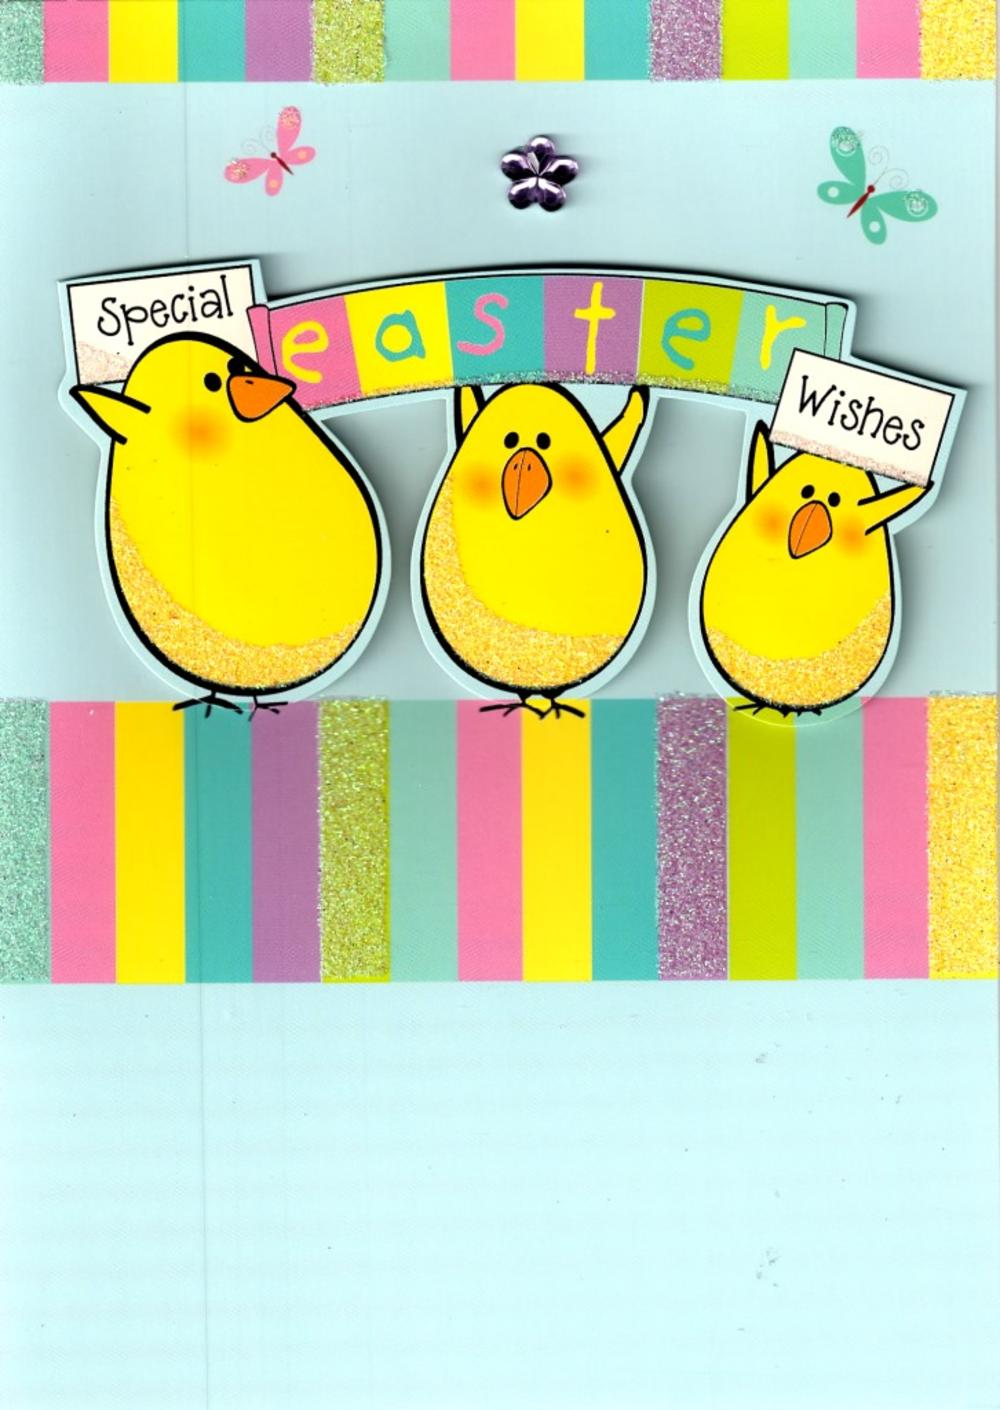 Special Easter Wishes Cute Chicks Easter Card Cards Love Kates